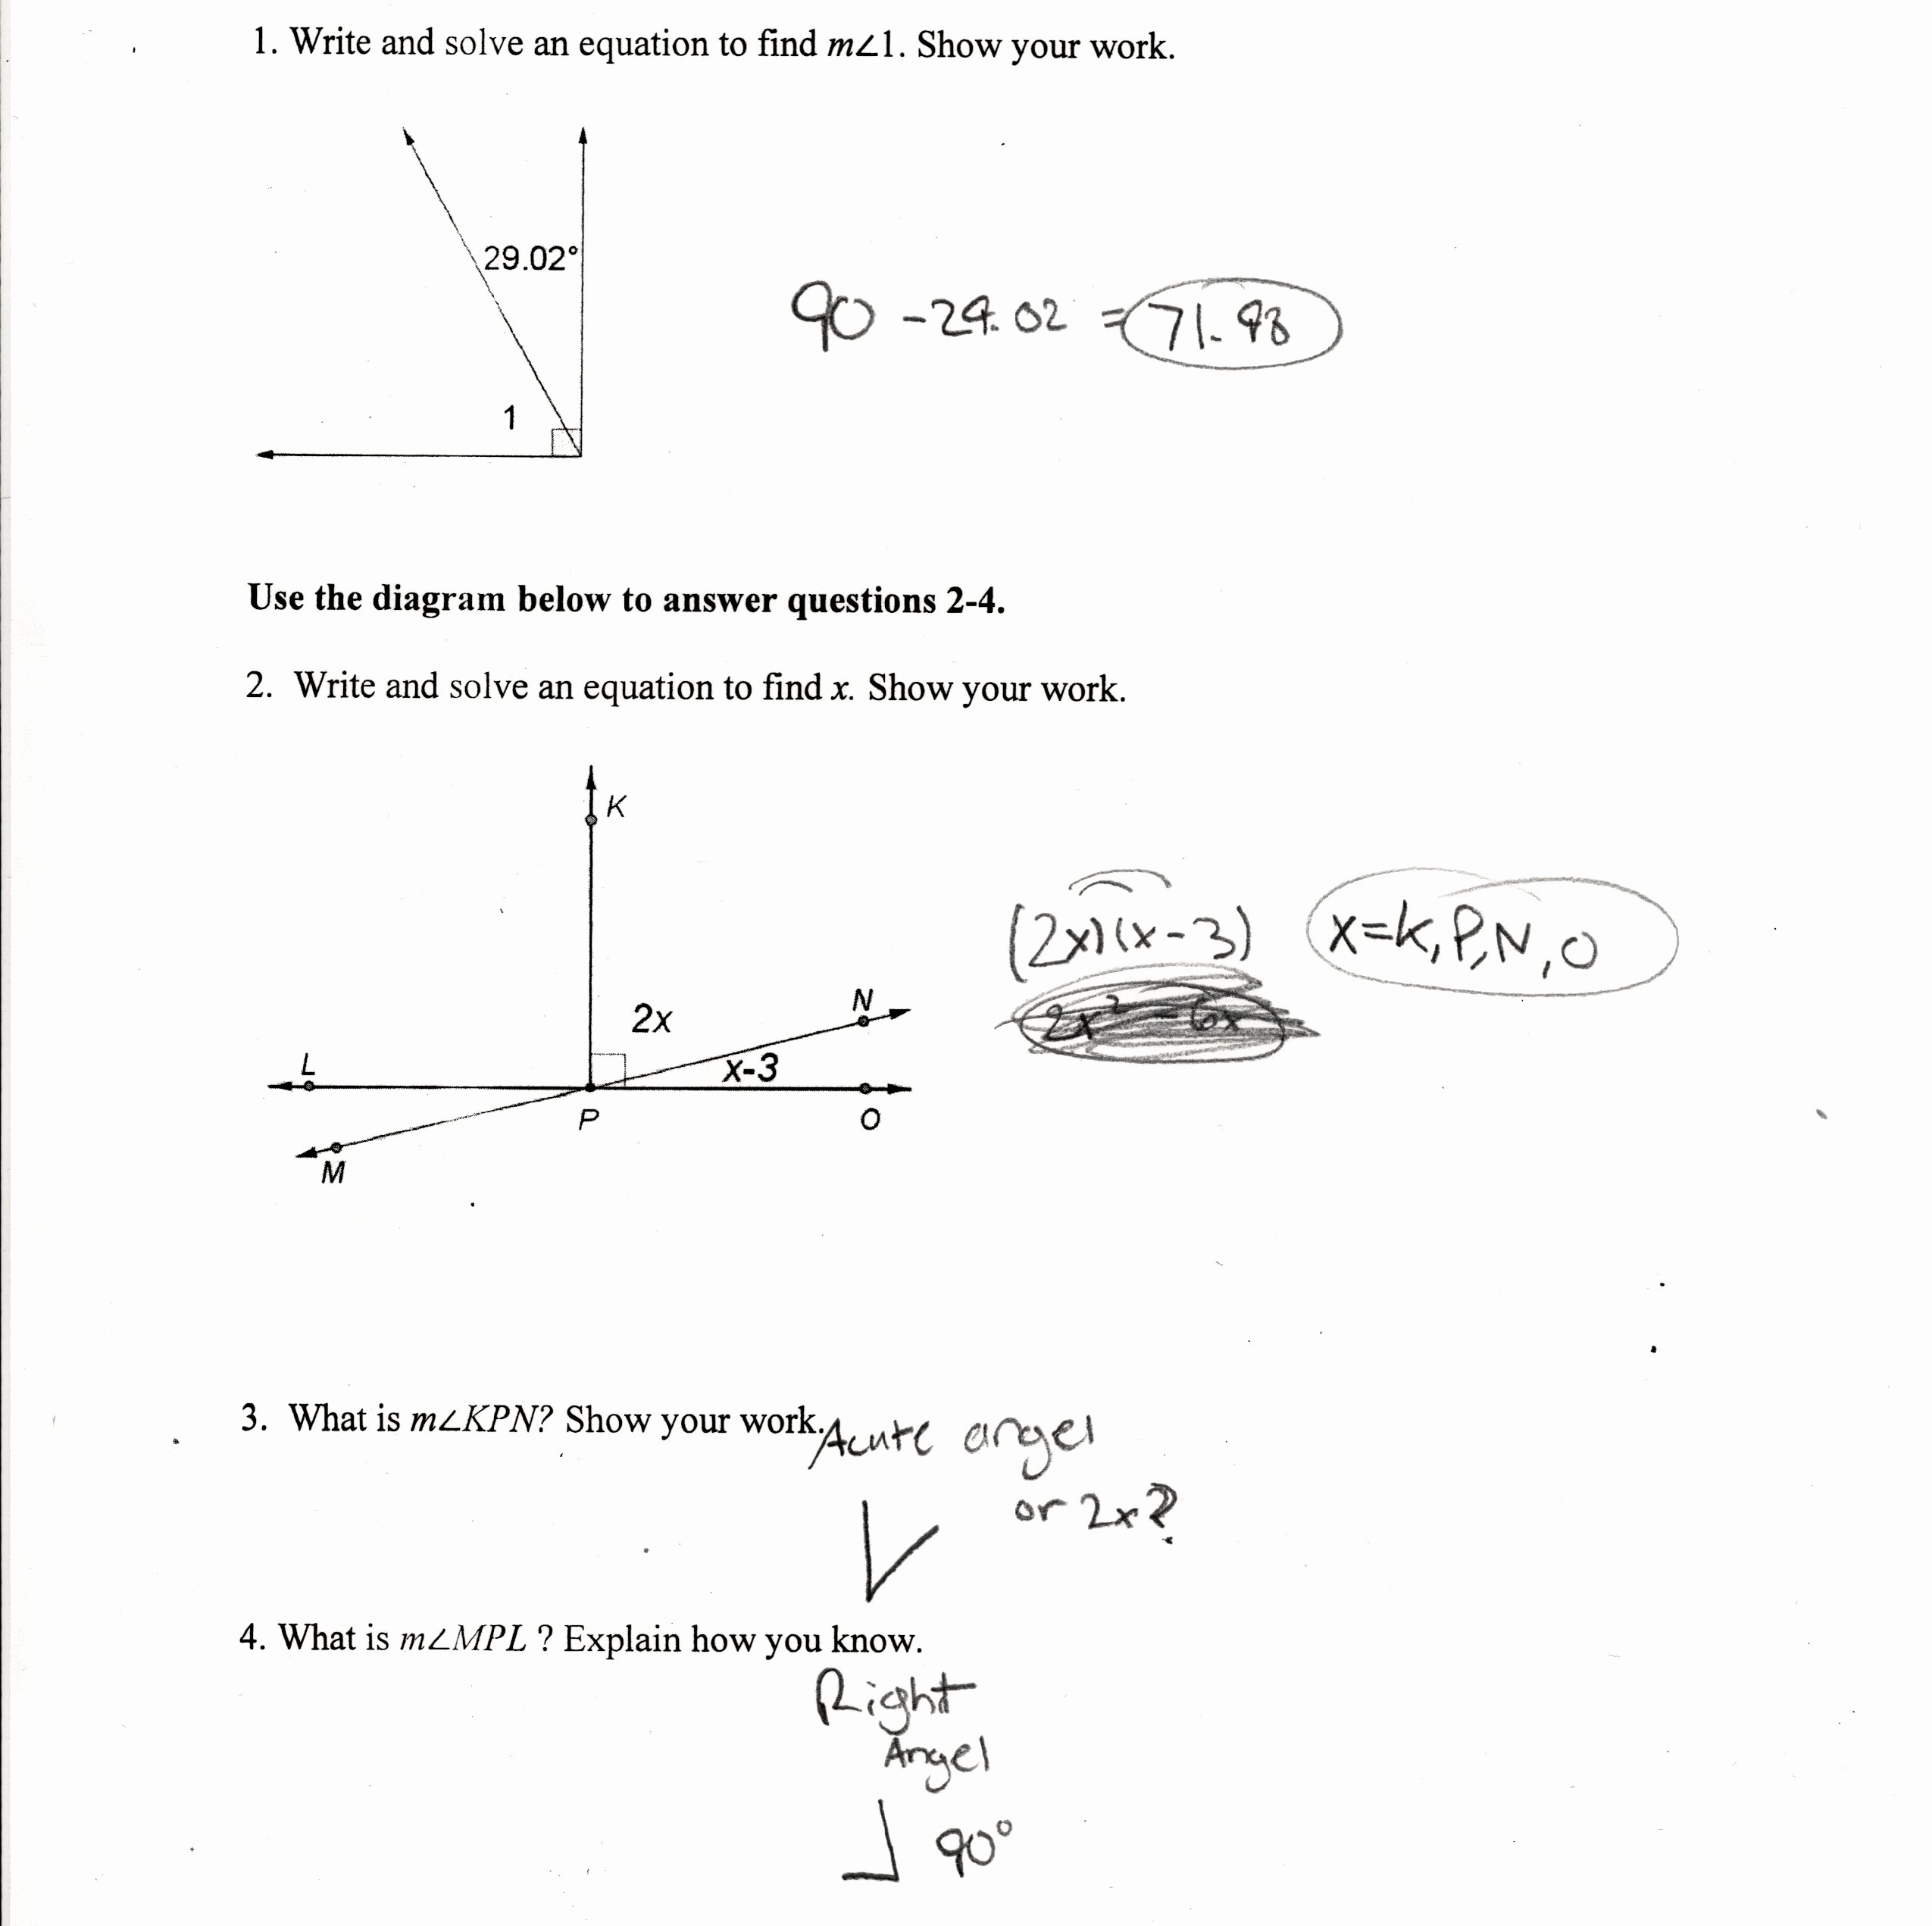 Finding Angle Measures Worksheet Luxury Find the Measure Each Angle Indicated Worksheet Answers